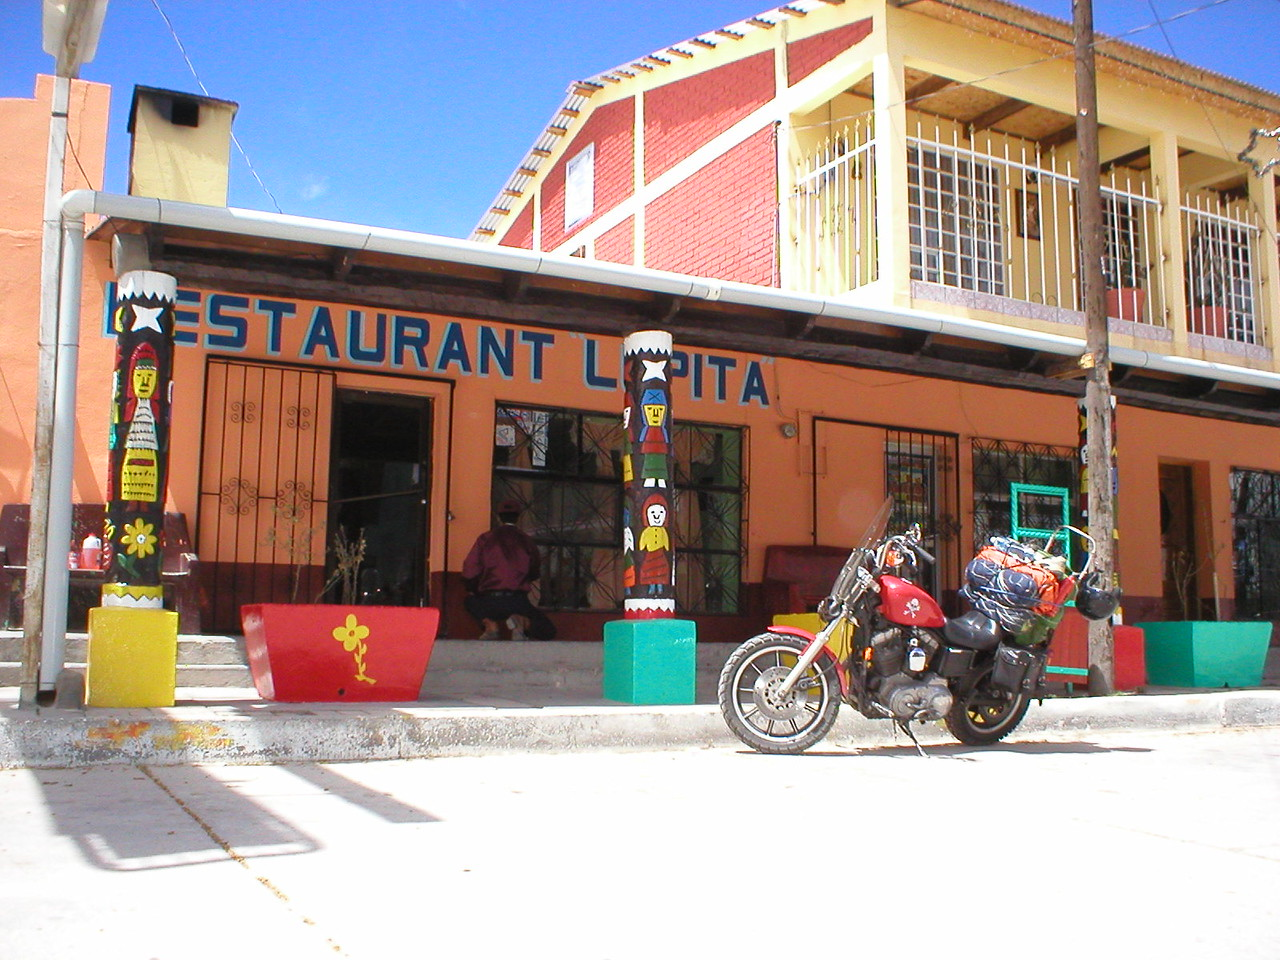 Back to Creel to provision up for going down to Batopilas and beyond. <br /> This is a good place to eat.